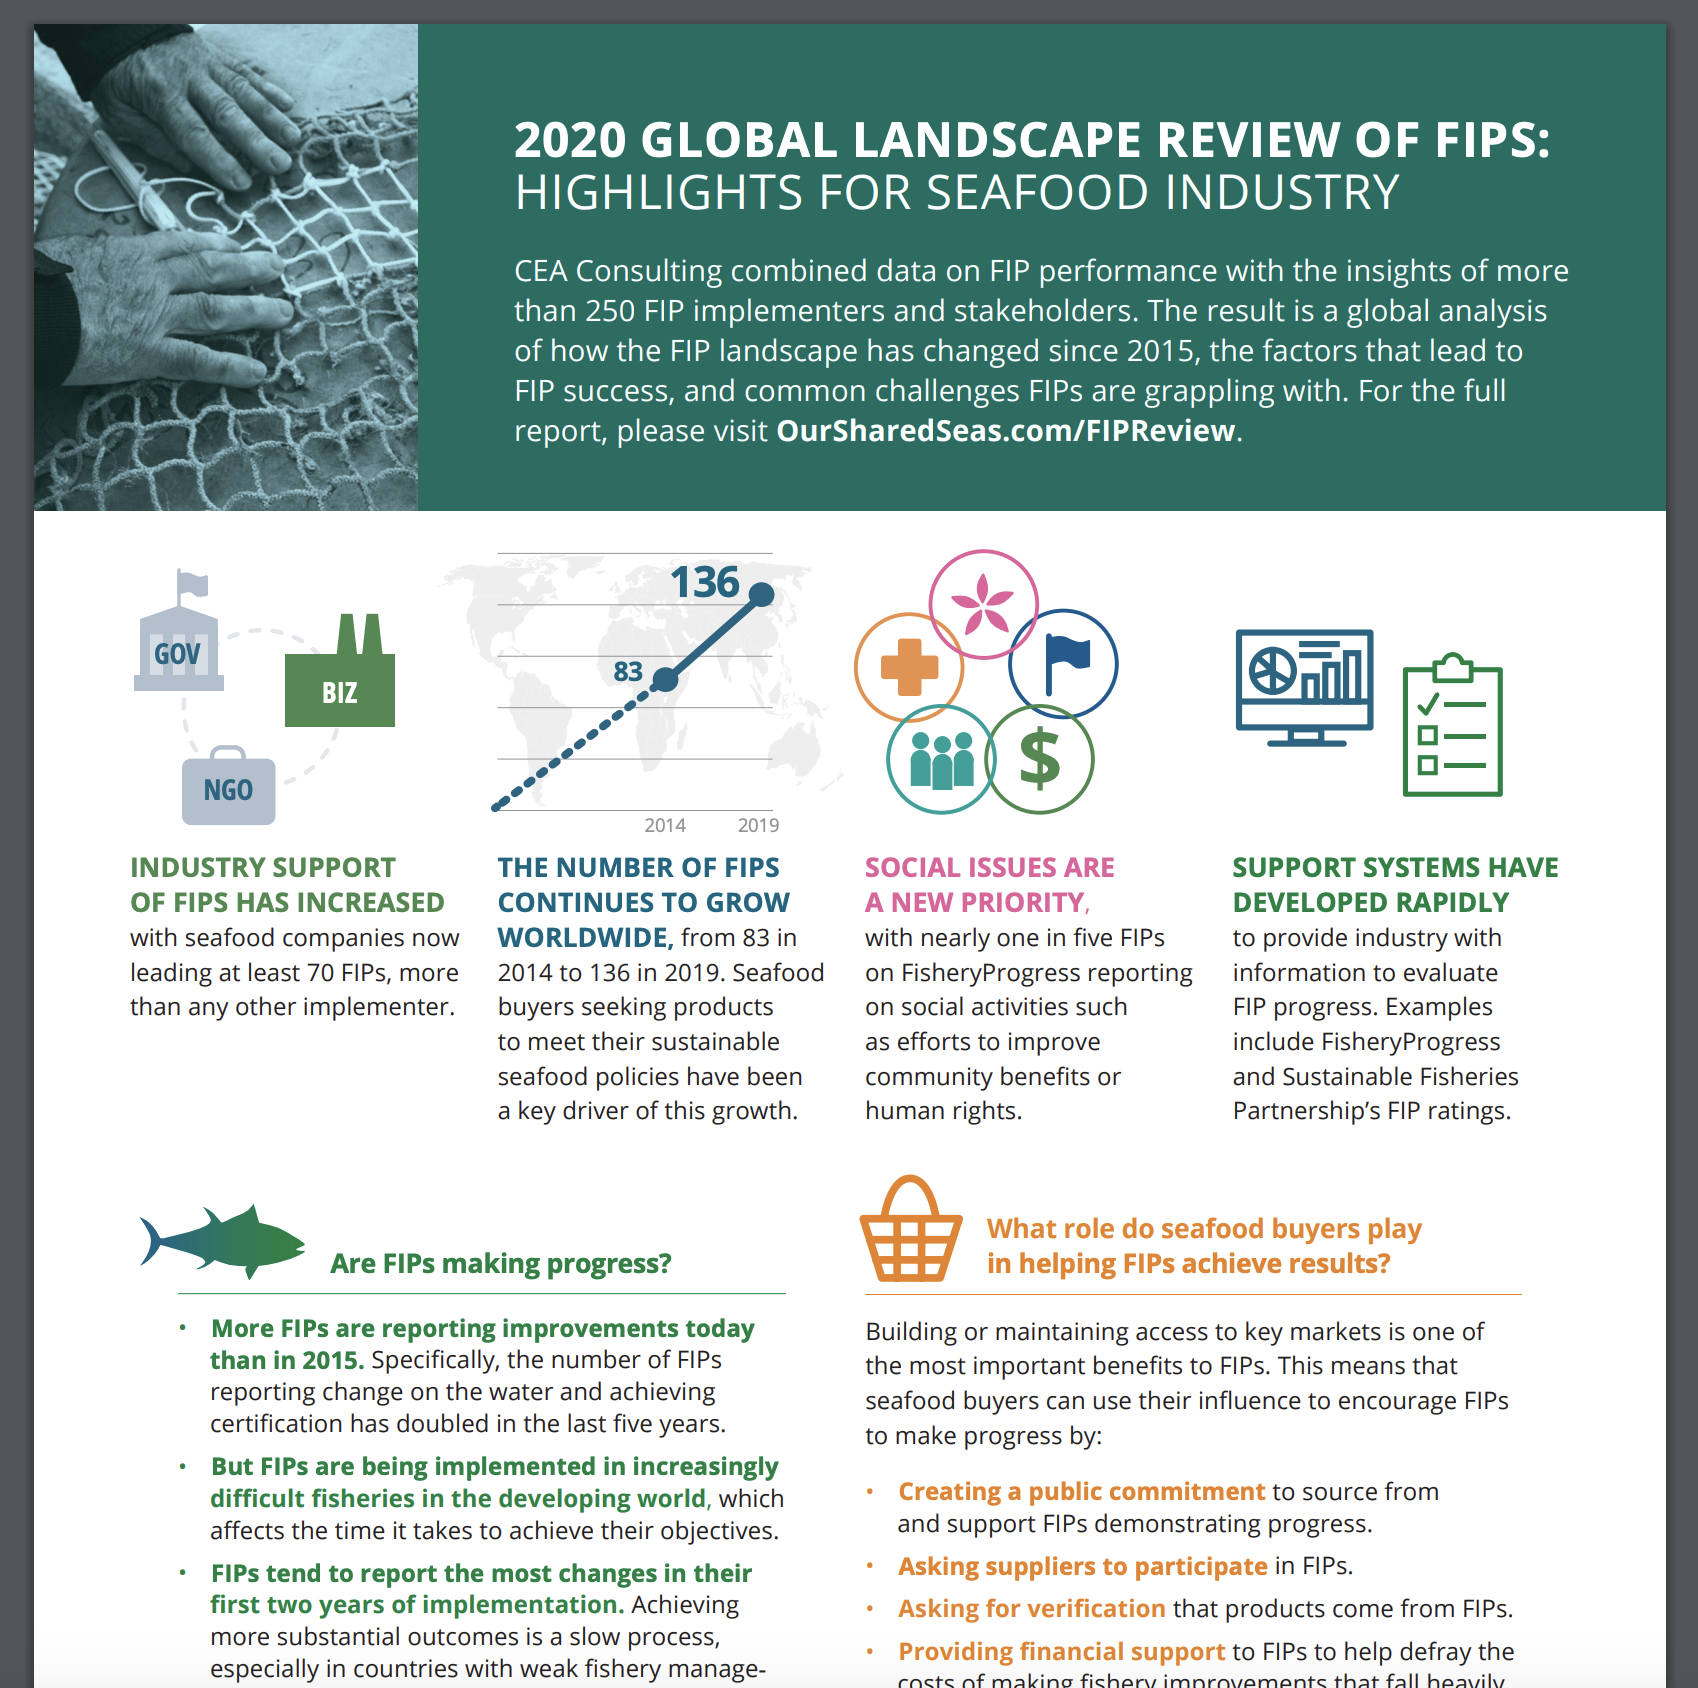 2020 Global FIP Review: High-level summary for seafood industry